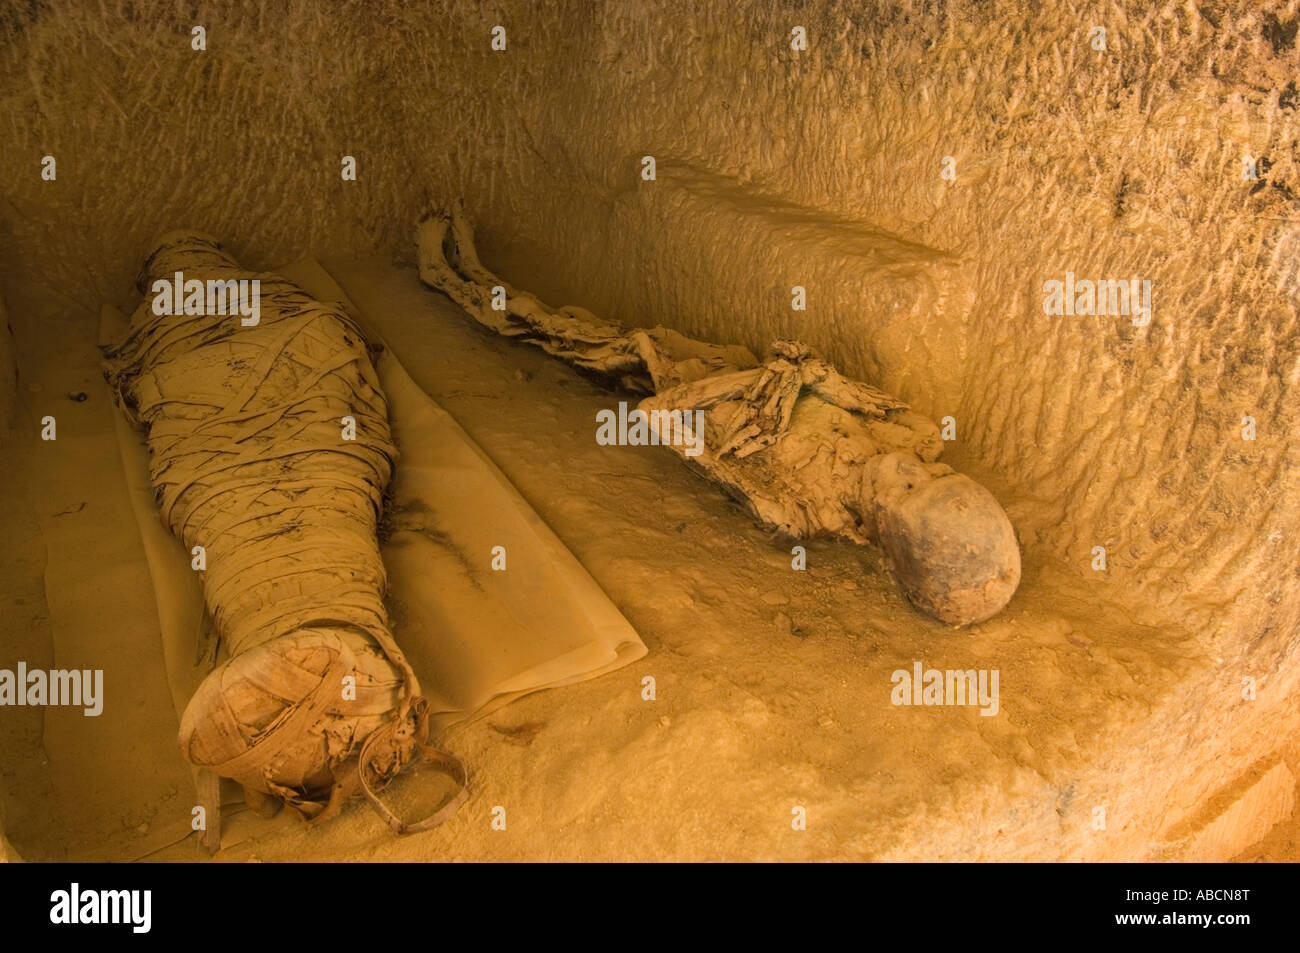 mummies in a tomb on the mountain of the dead, Siwa oasis, the Great Sand Sea, Western desert, Egypt - Stock Image